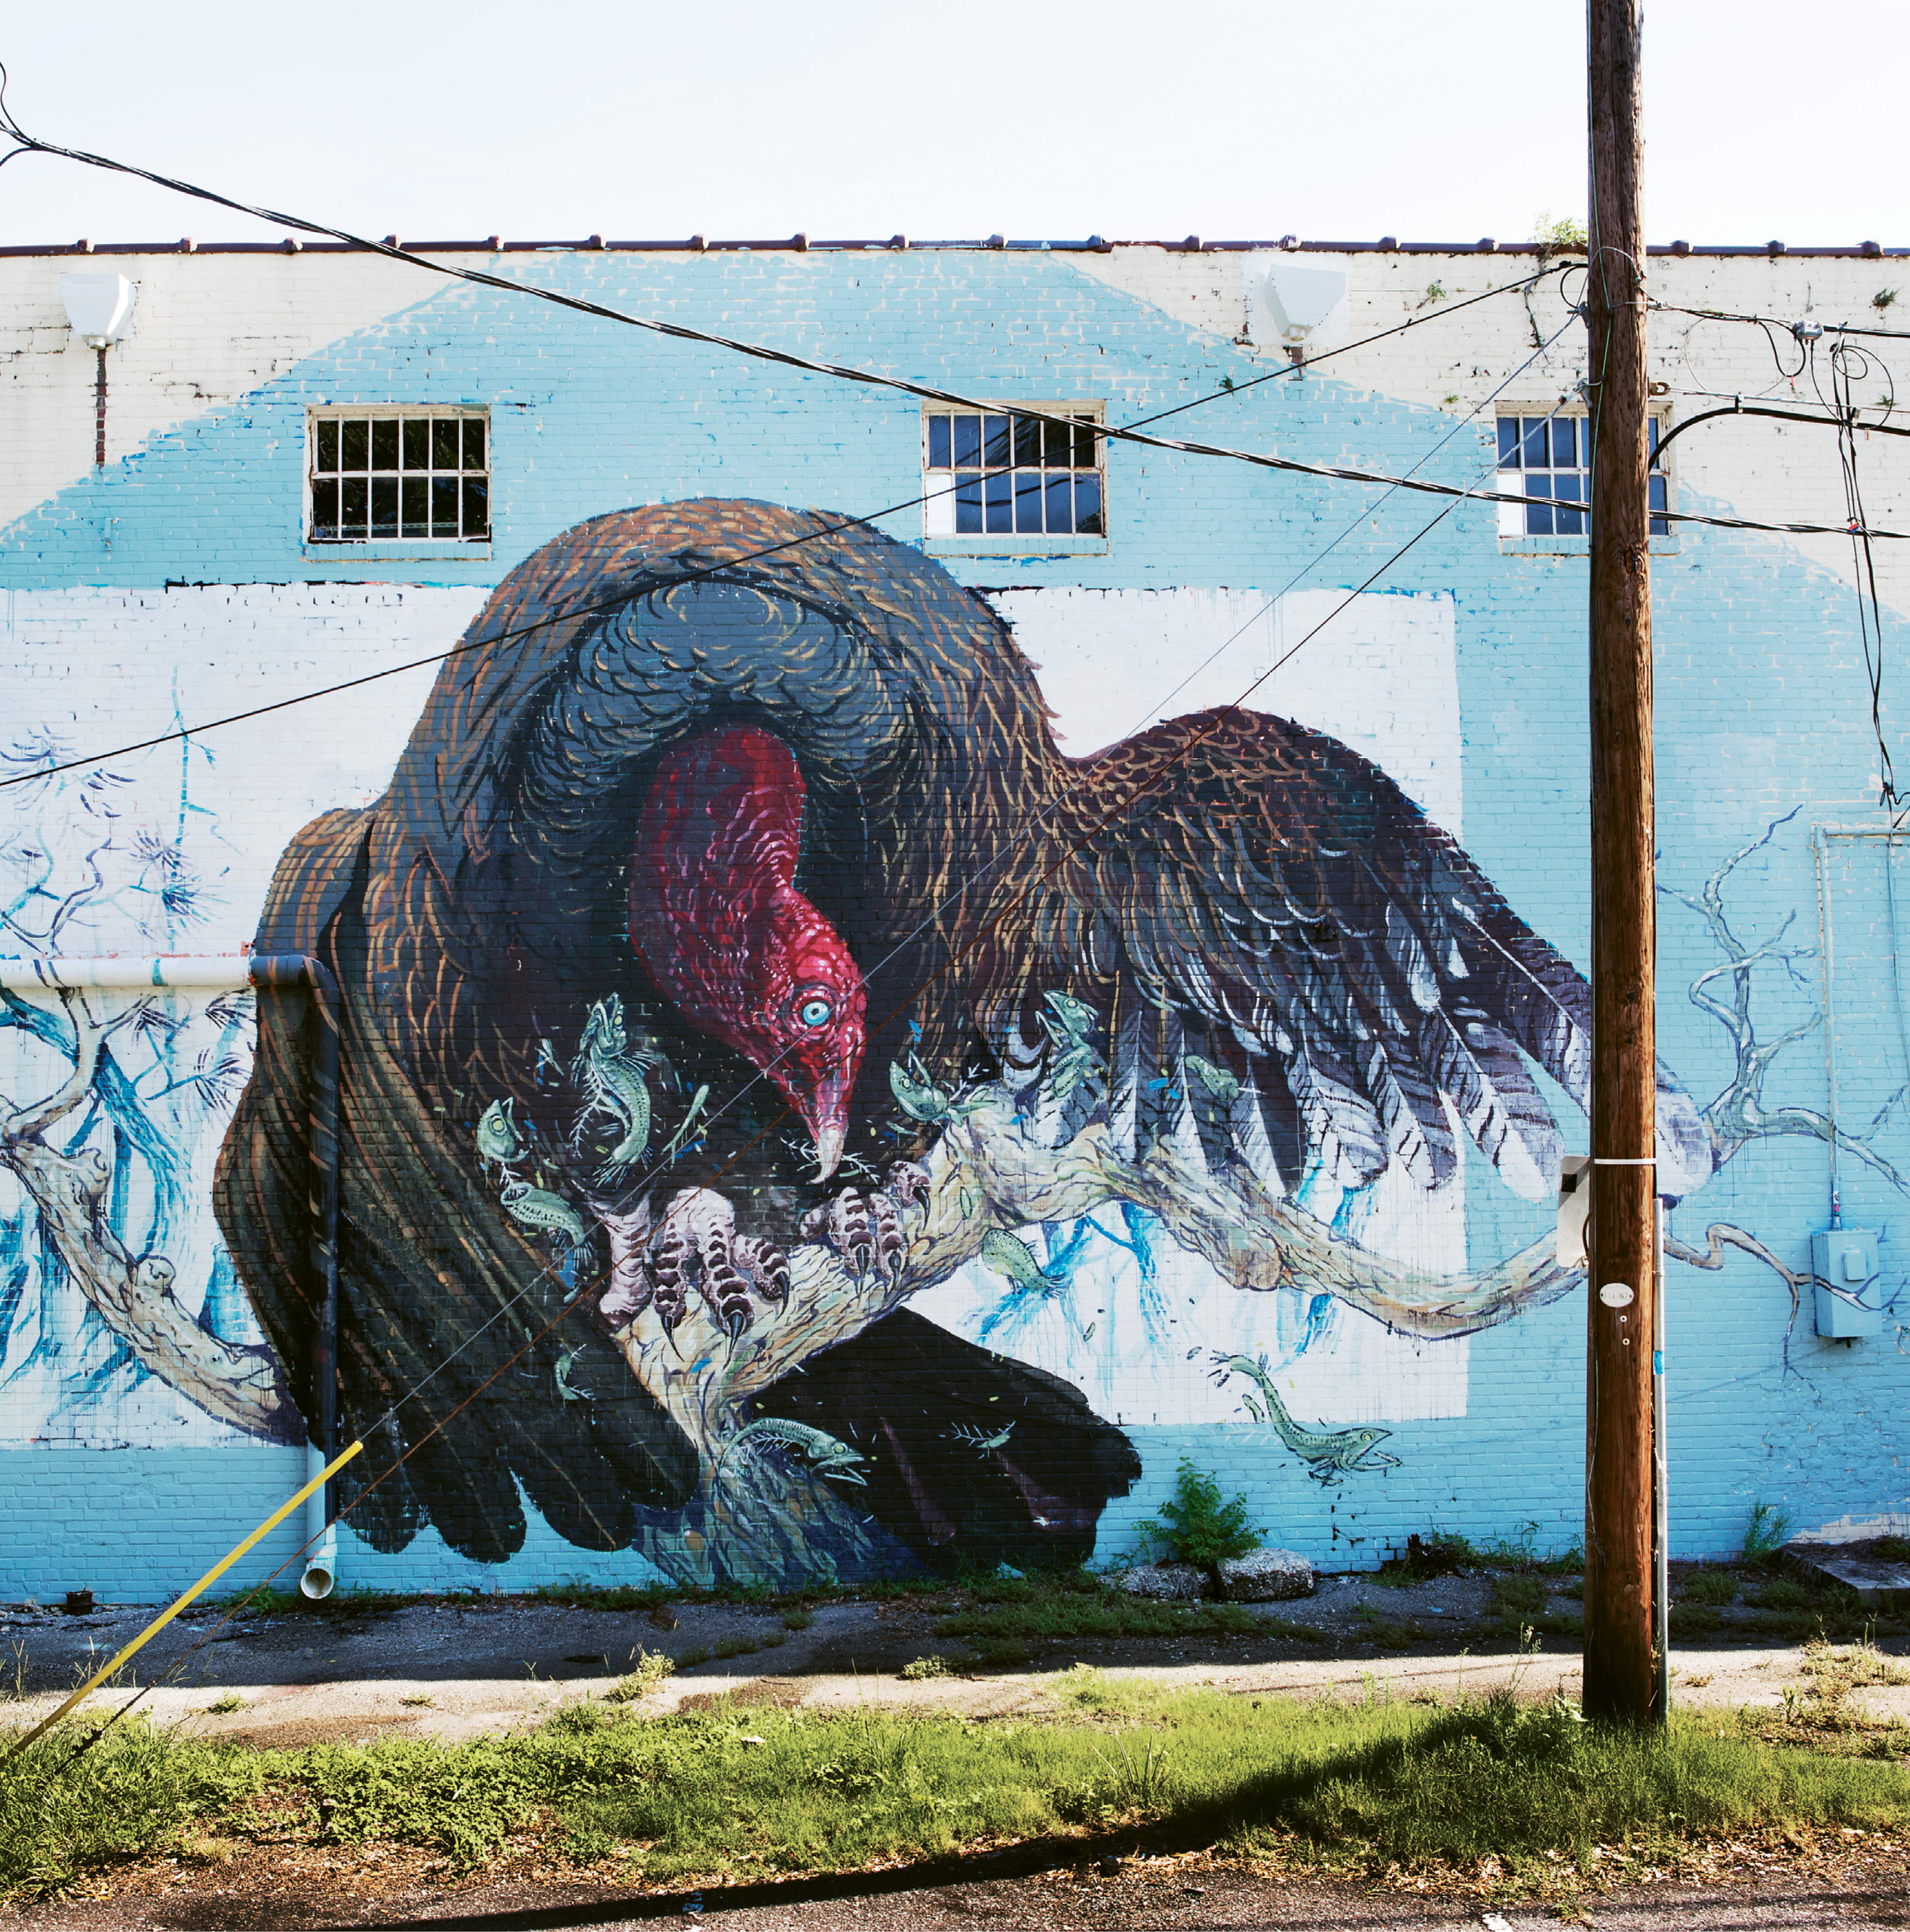 Turkey Vulture by Hitnes  August 2015  on Alycia Alley behind Children's Cancer Society Thrift Store  (835 Savannah Hwy.)  working with ChART (Charleston Art) outdoor initiative & gallery and enough pie, the Italian muralist produced this work during his journey across the U.S. retracing the steps of John J. Audubon.